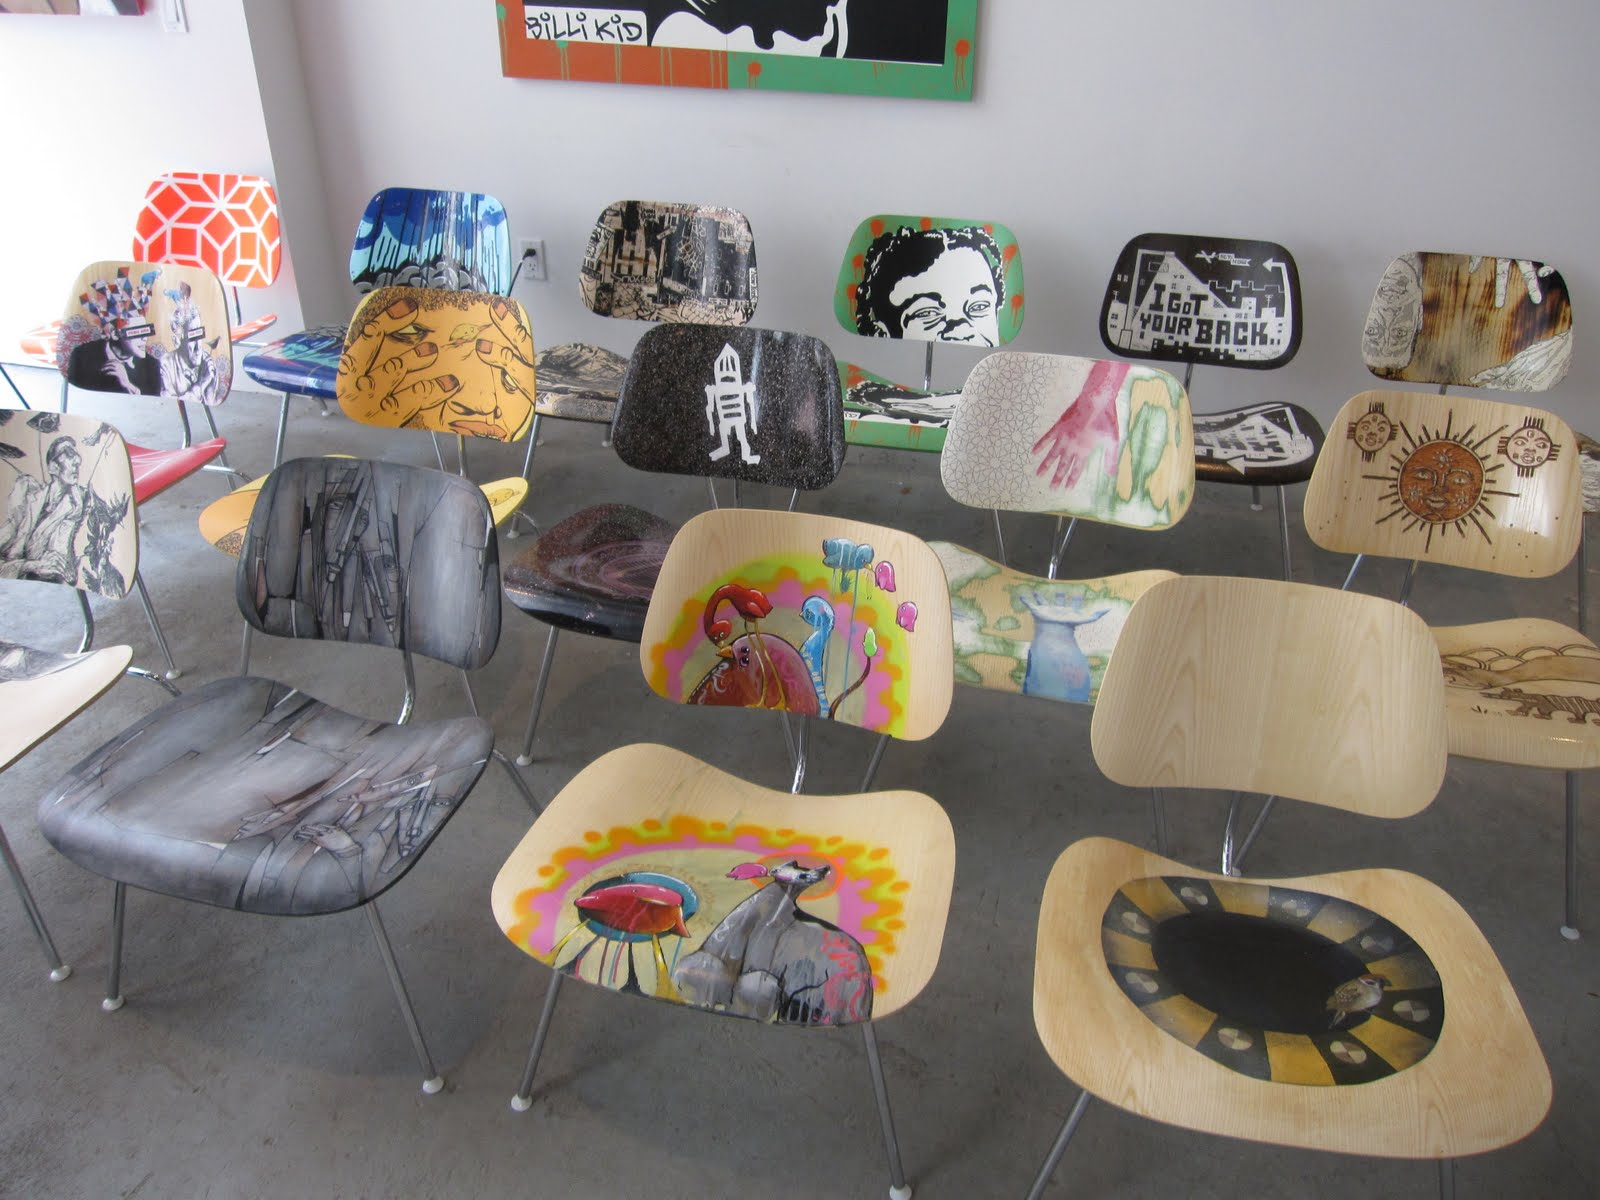 Graffiti art for your home - If You Are Not Ready For Graffiti On The Walls At Your Home Start With Some Furniture